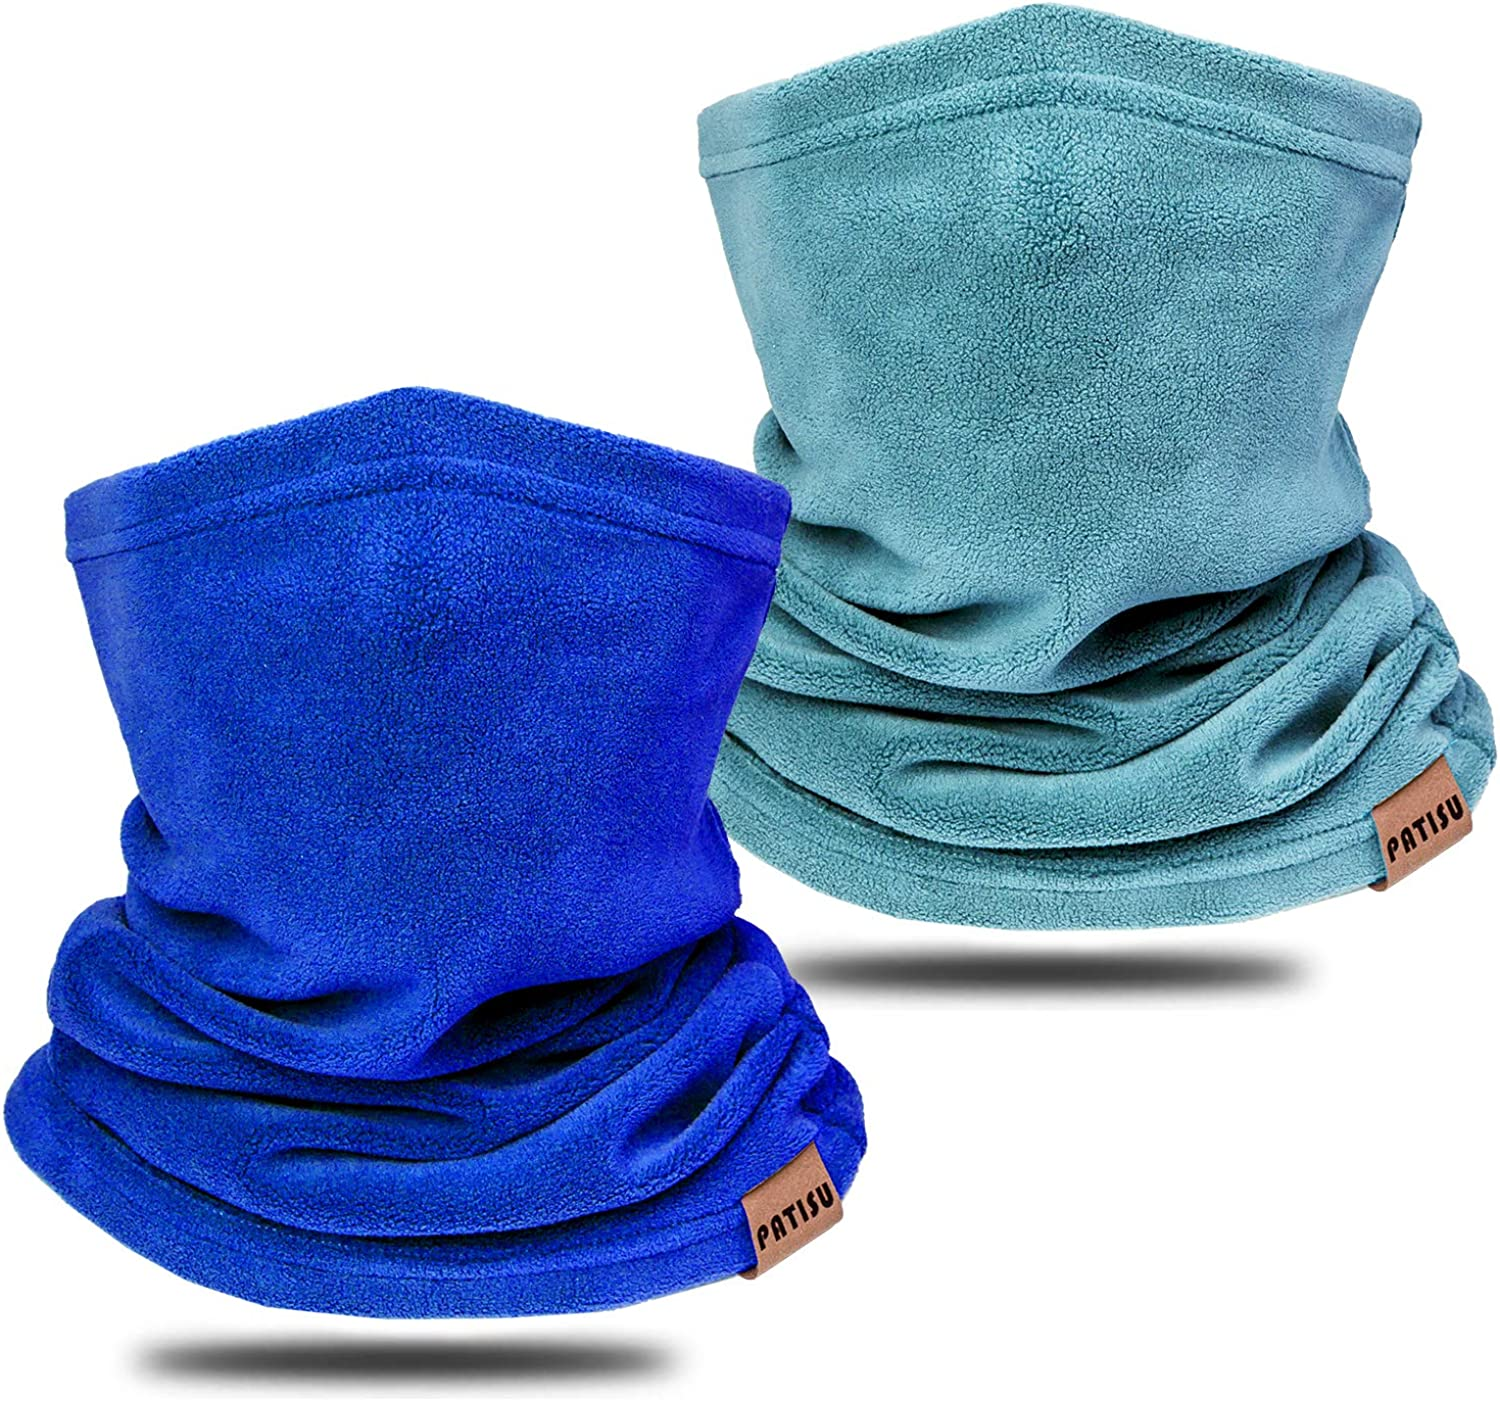 Neck Warmer Winter Gaiter Face New product Women Me for Mask Max 69% OFF Balaclavas